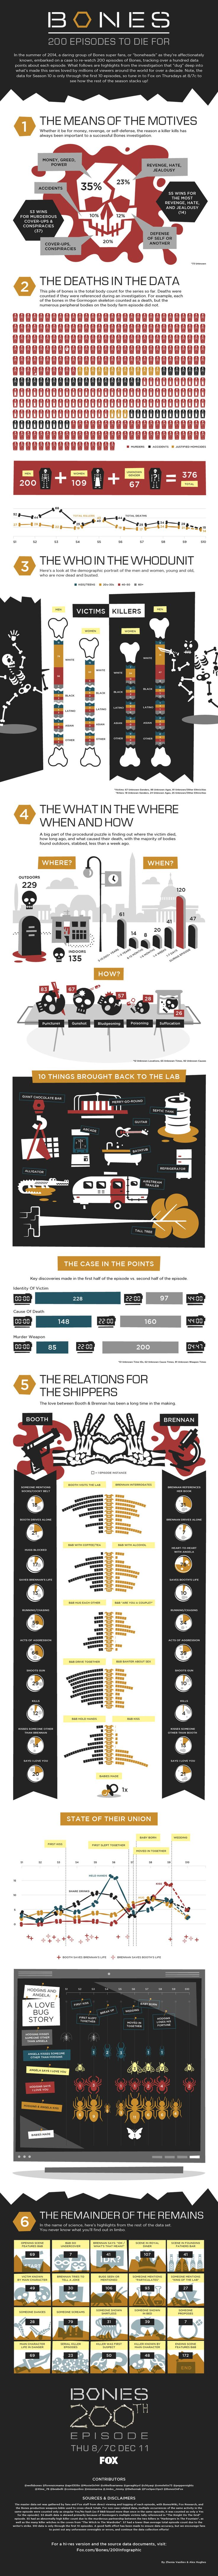 Bones 200th Infographic 12 4 14 final